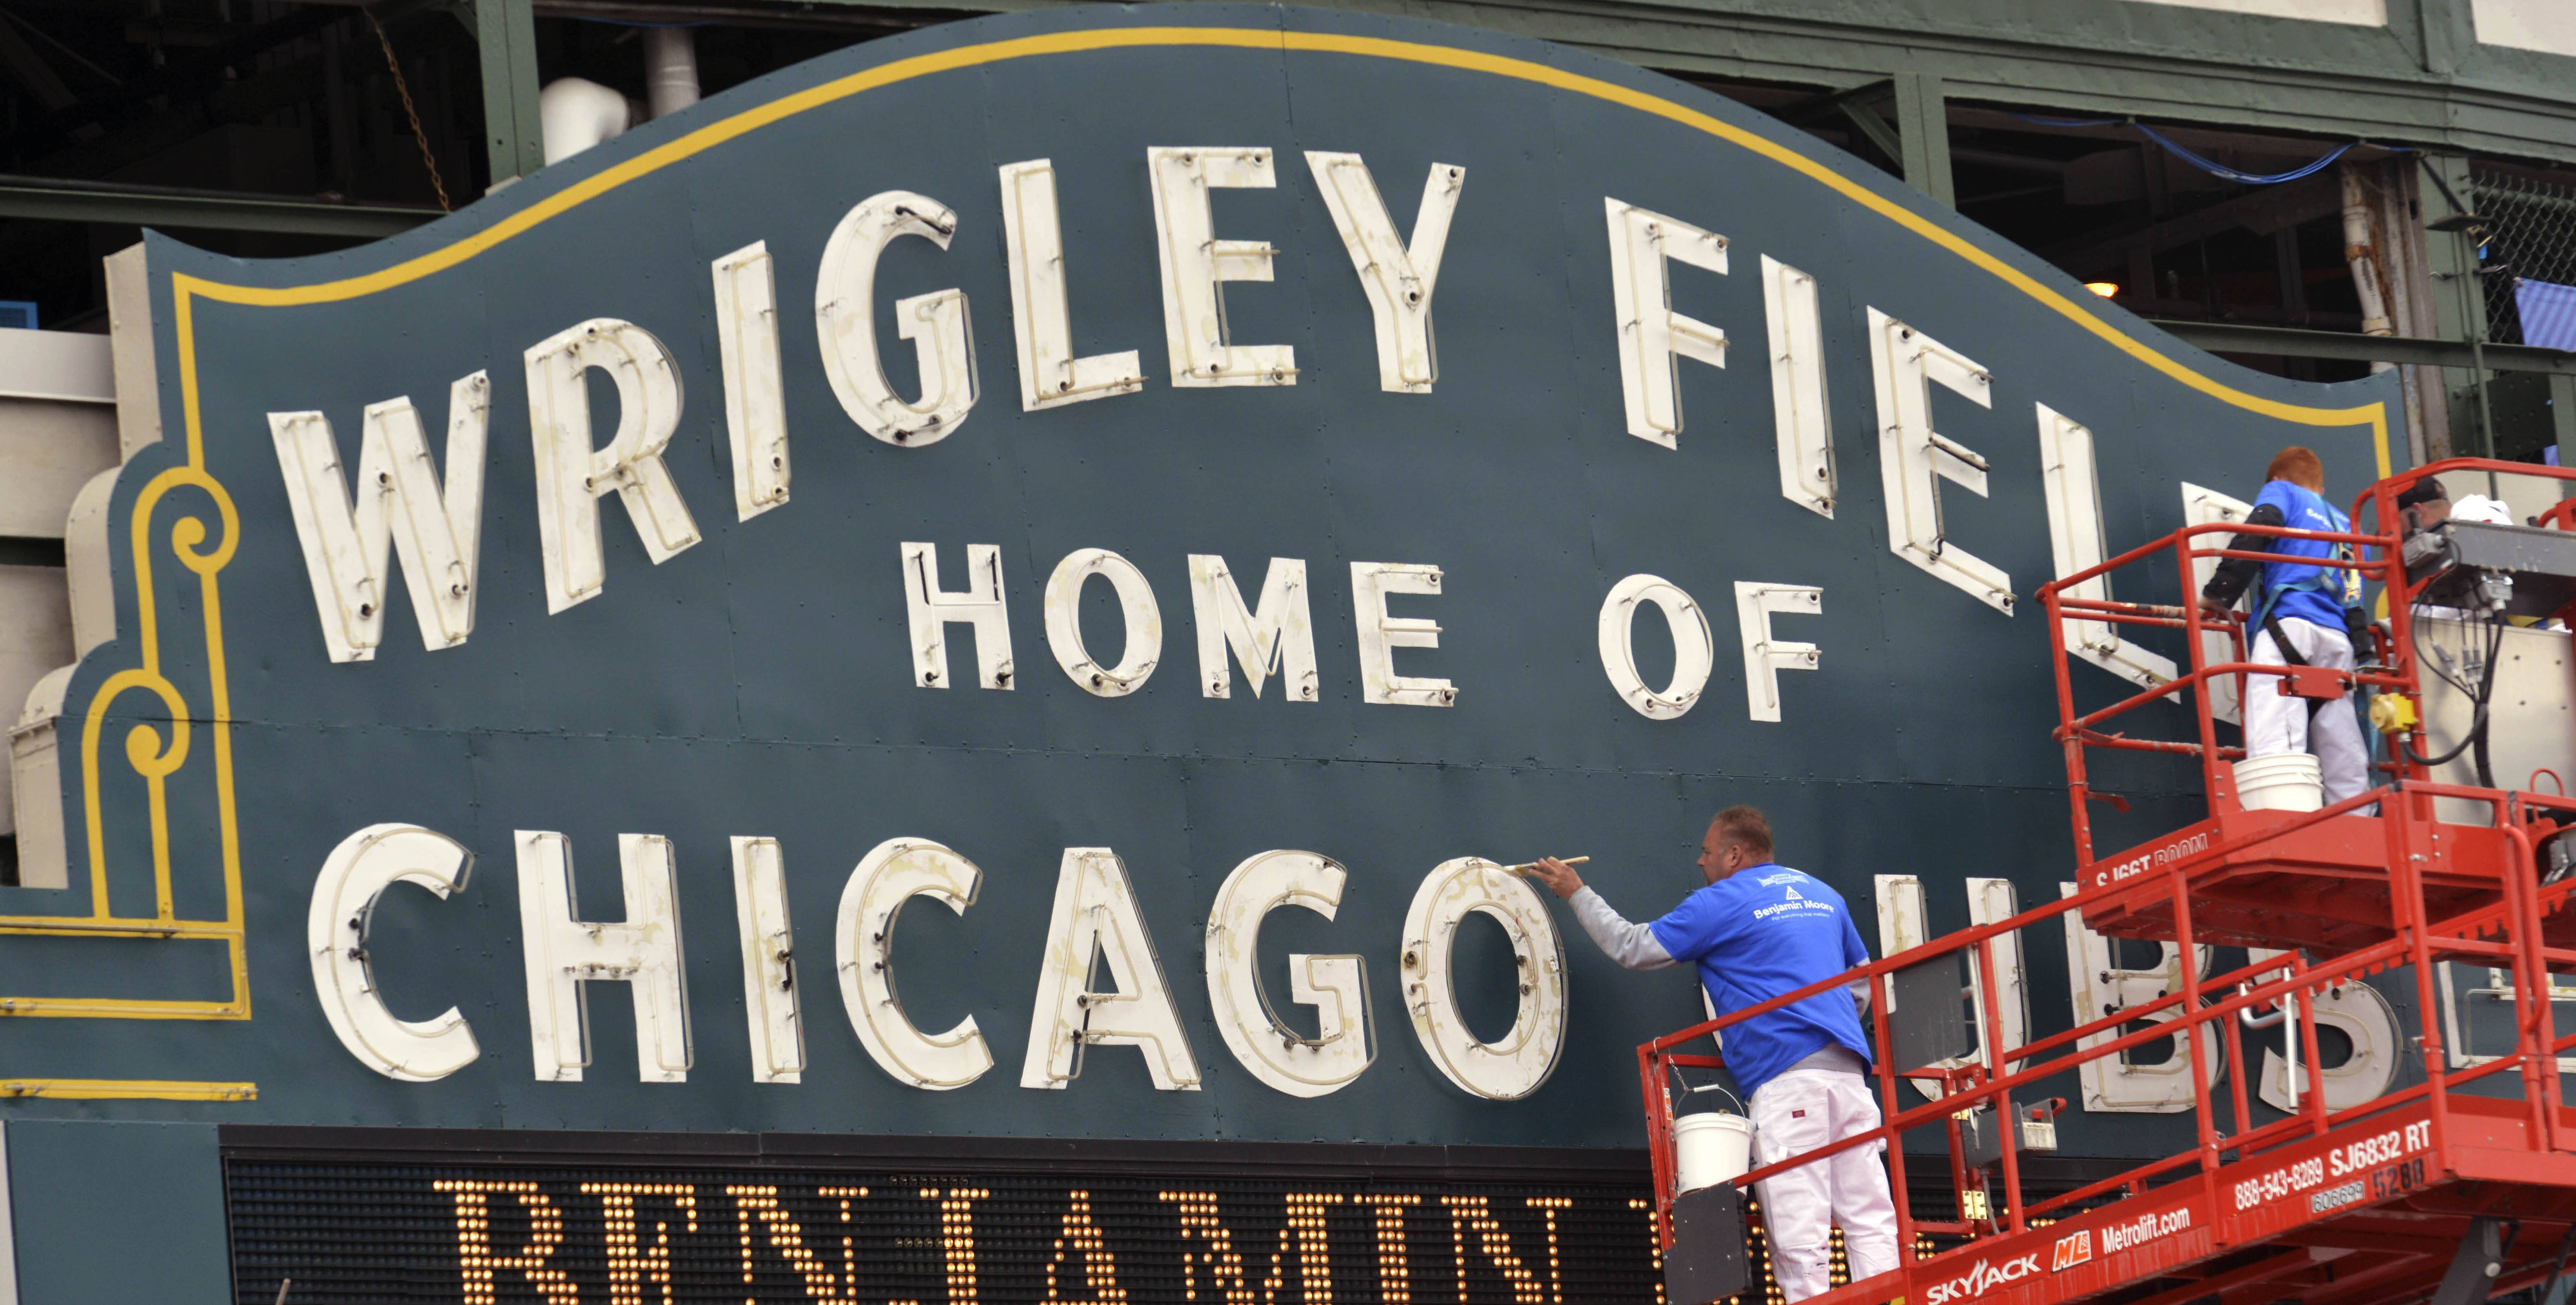 Painters put the finishing touches with green and gold paint on the iconic marquee outside Wrigley Field on Wednesday, May 14, 2014, to match the colors from 1930s as part of the field's anniversary celebration before the Cubs homestand against the Milwaukee Brewers and New York Yankees beginning Friday. (AP Photo/Sun-Times Media, Al Podgorski)  MANDATORY CREDIT, MAGS OUT, NO SALES